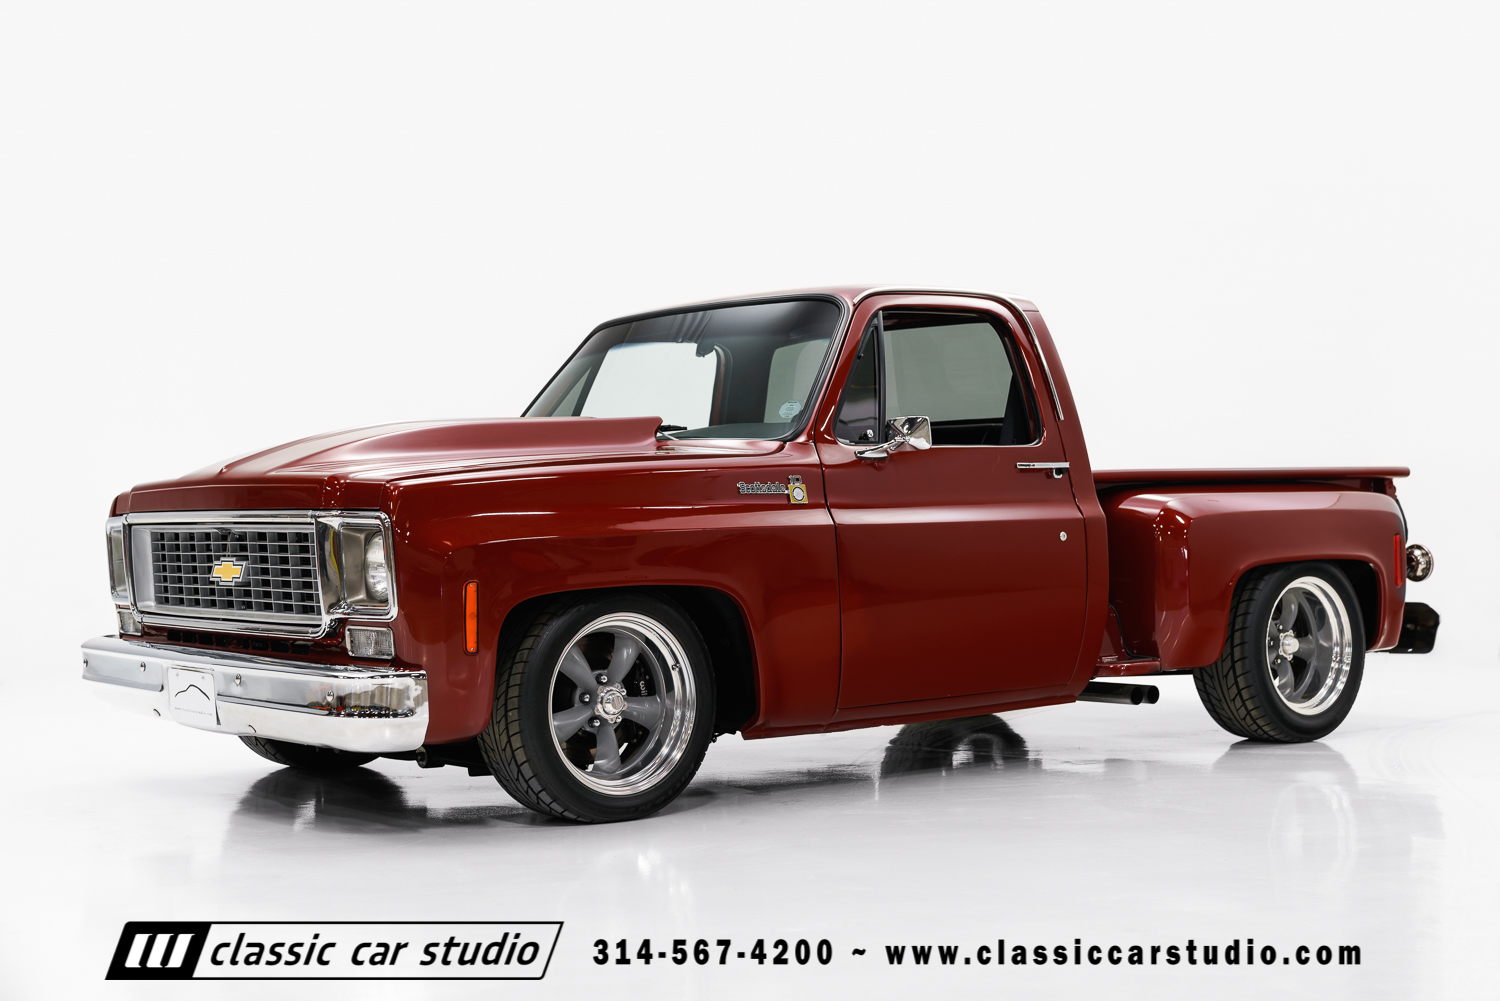 1976 Chevrolet C10 Classic Car Studio Chevy Custom Deluxe Truck 78 1